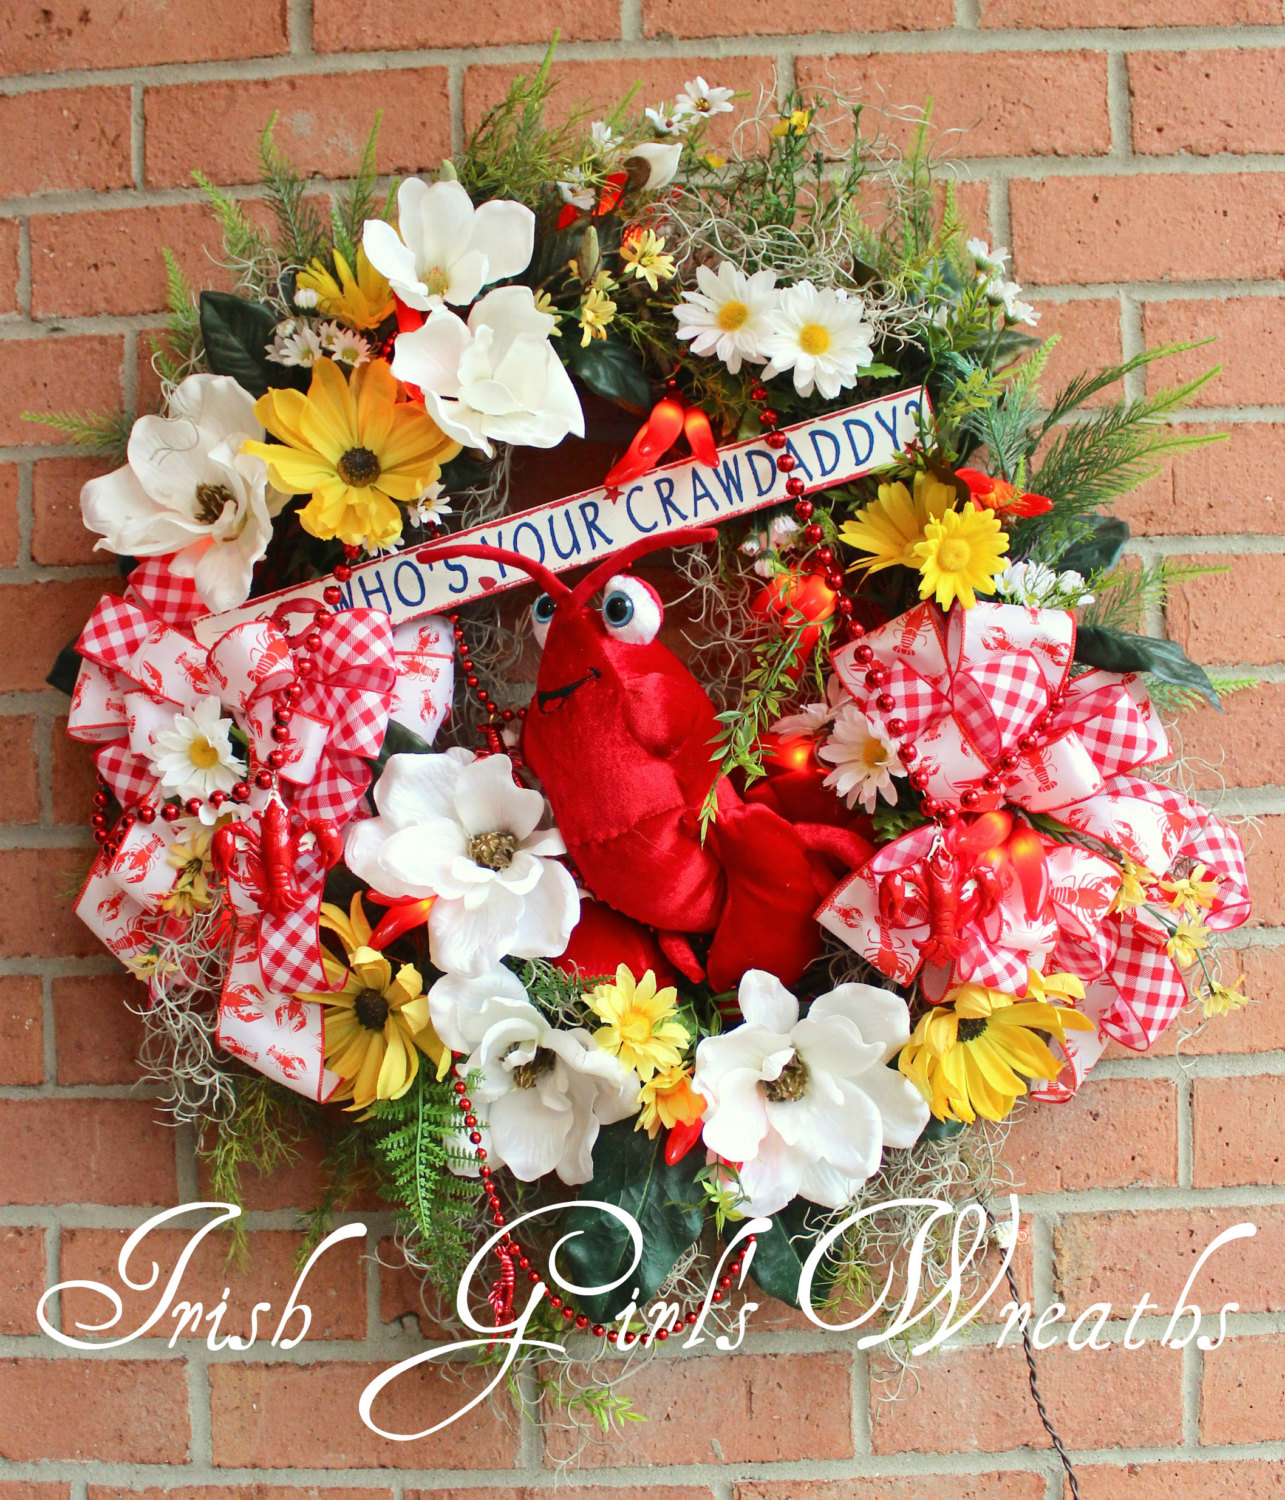 Who's Your Crawdaddy Wreath, Crawfish Boil, Cajun, Creole, Chili pepper lights, Magnolia wreath, Spanish moss, Crawfish beads